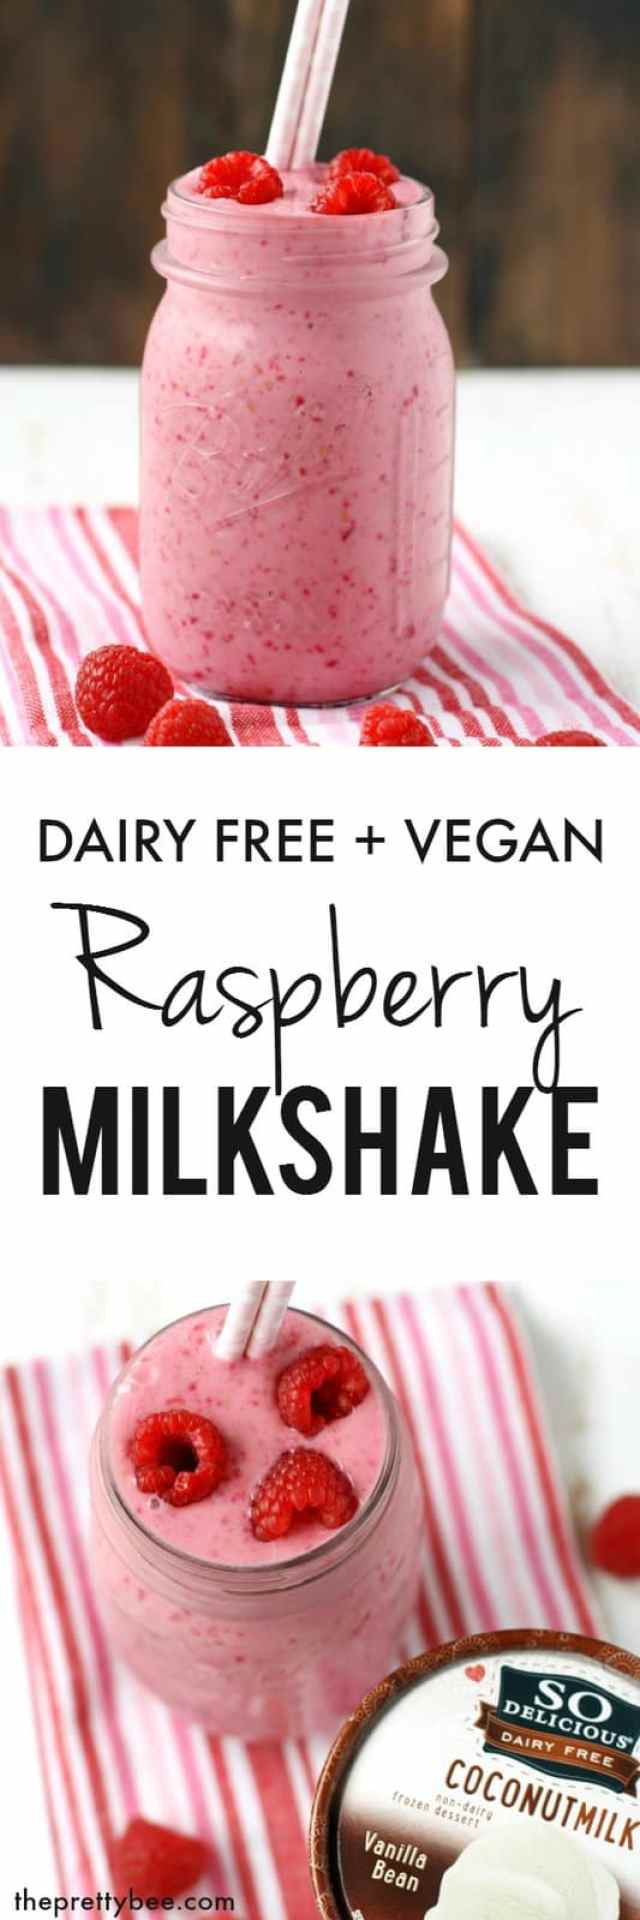 A creamy and delicious dairy free raspberry milkshake with a secret healthy ingredient! #ad #WellnessYourWay @So_Delicious @Kroger